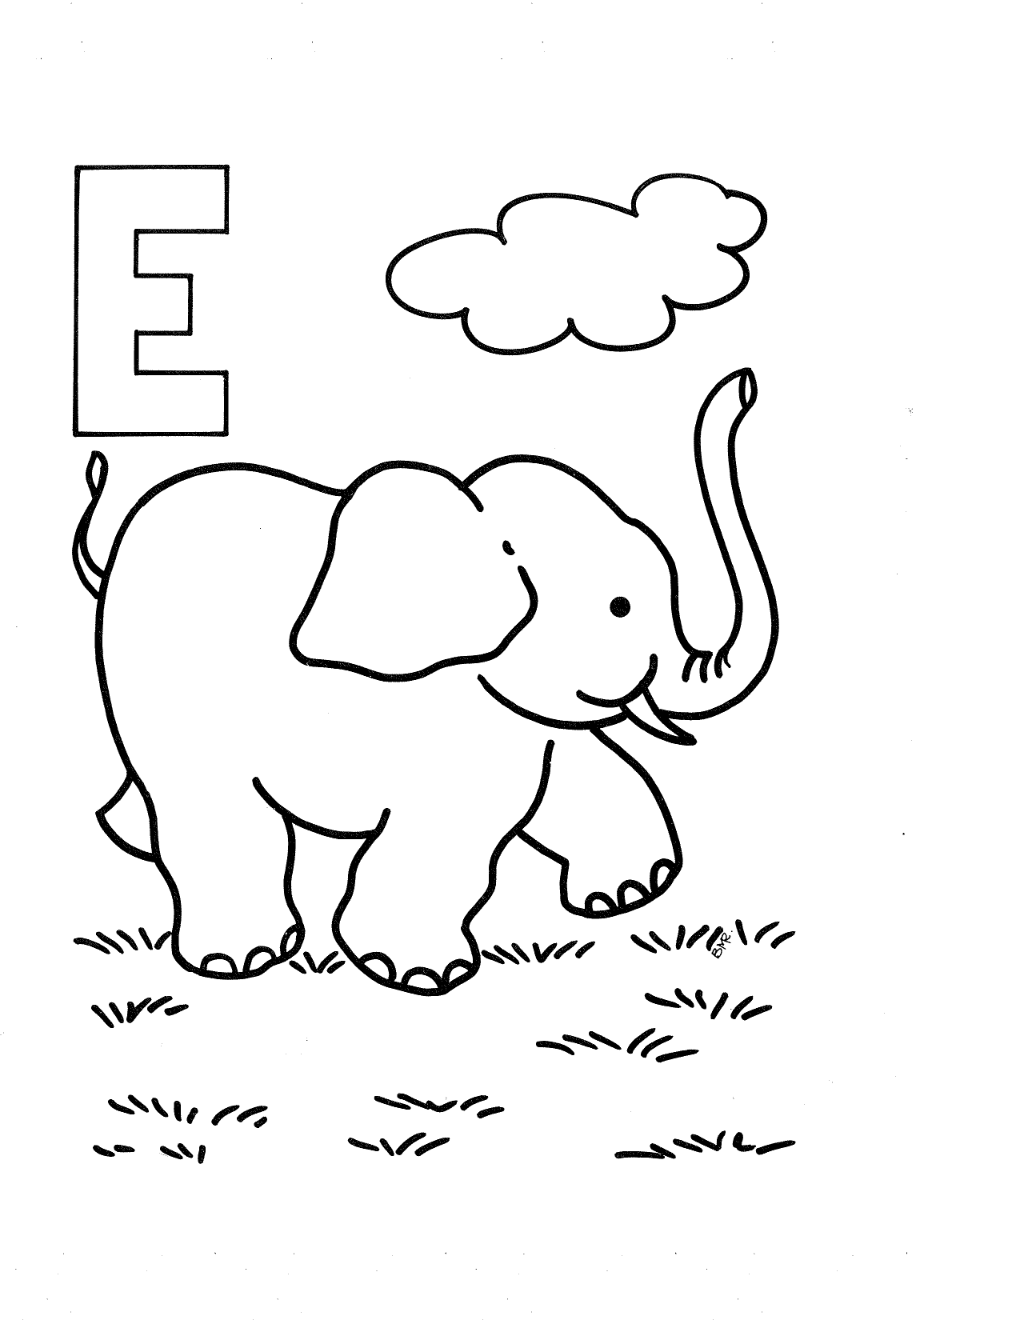 Printable letter e coloring pages - Letter E Coloring Page And Printable Free Elefante Kids Pages